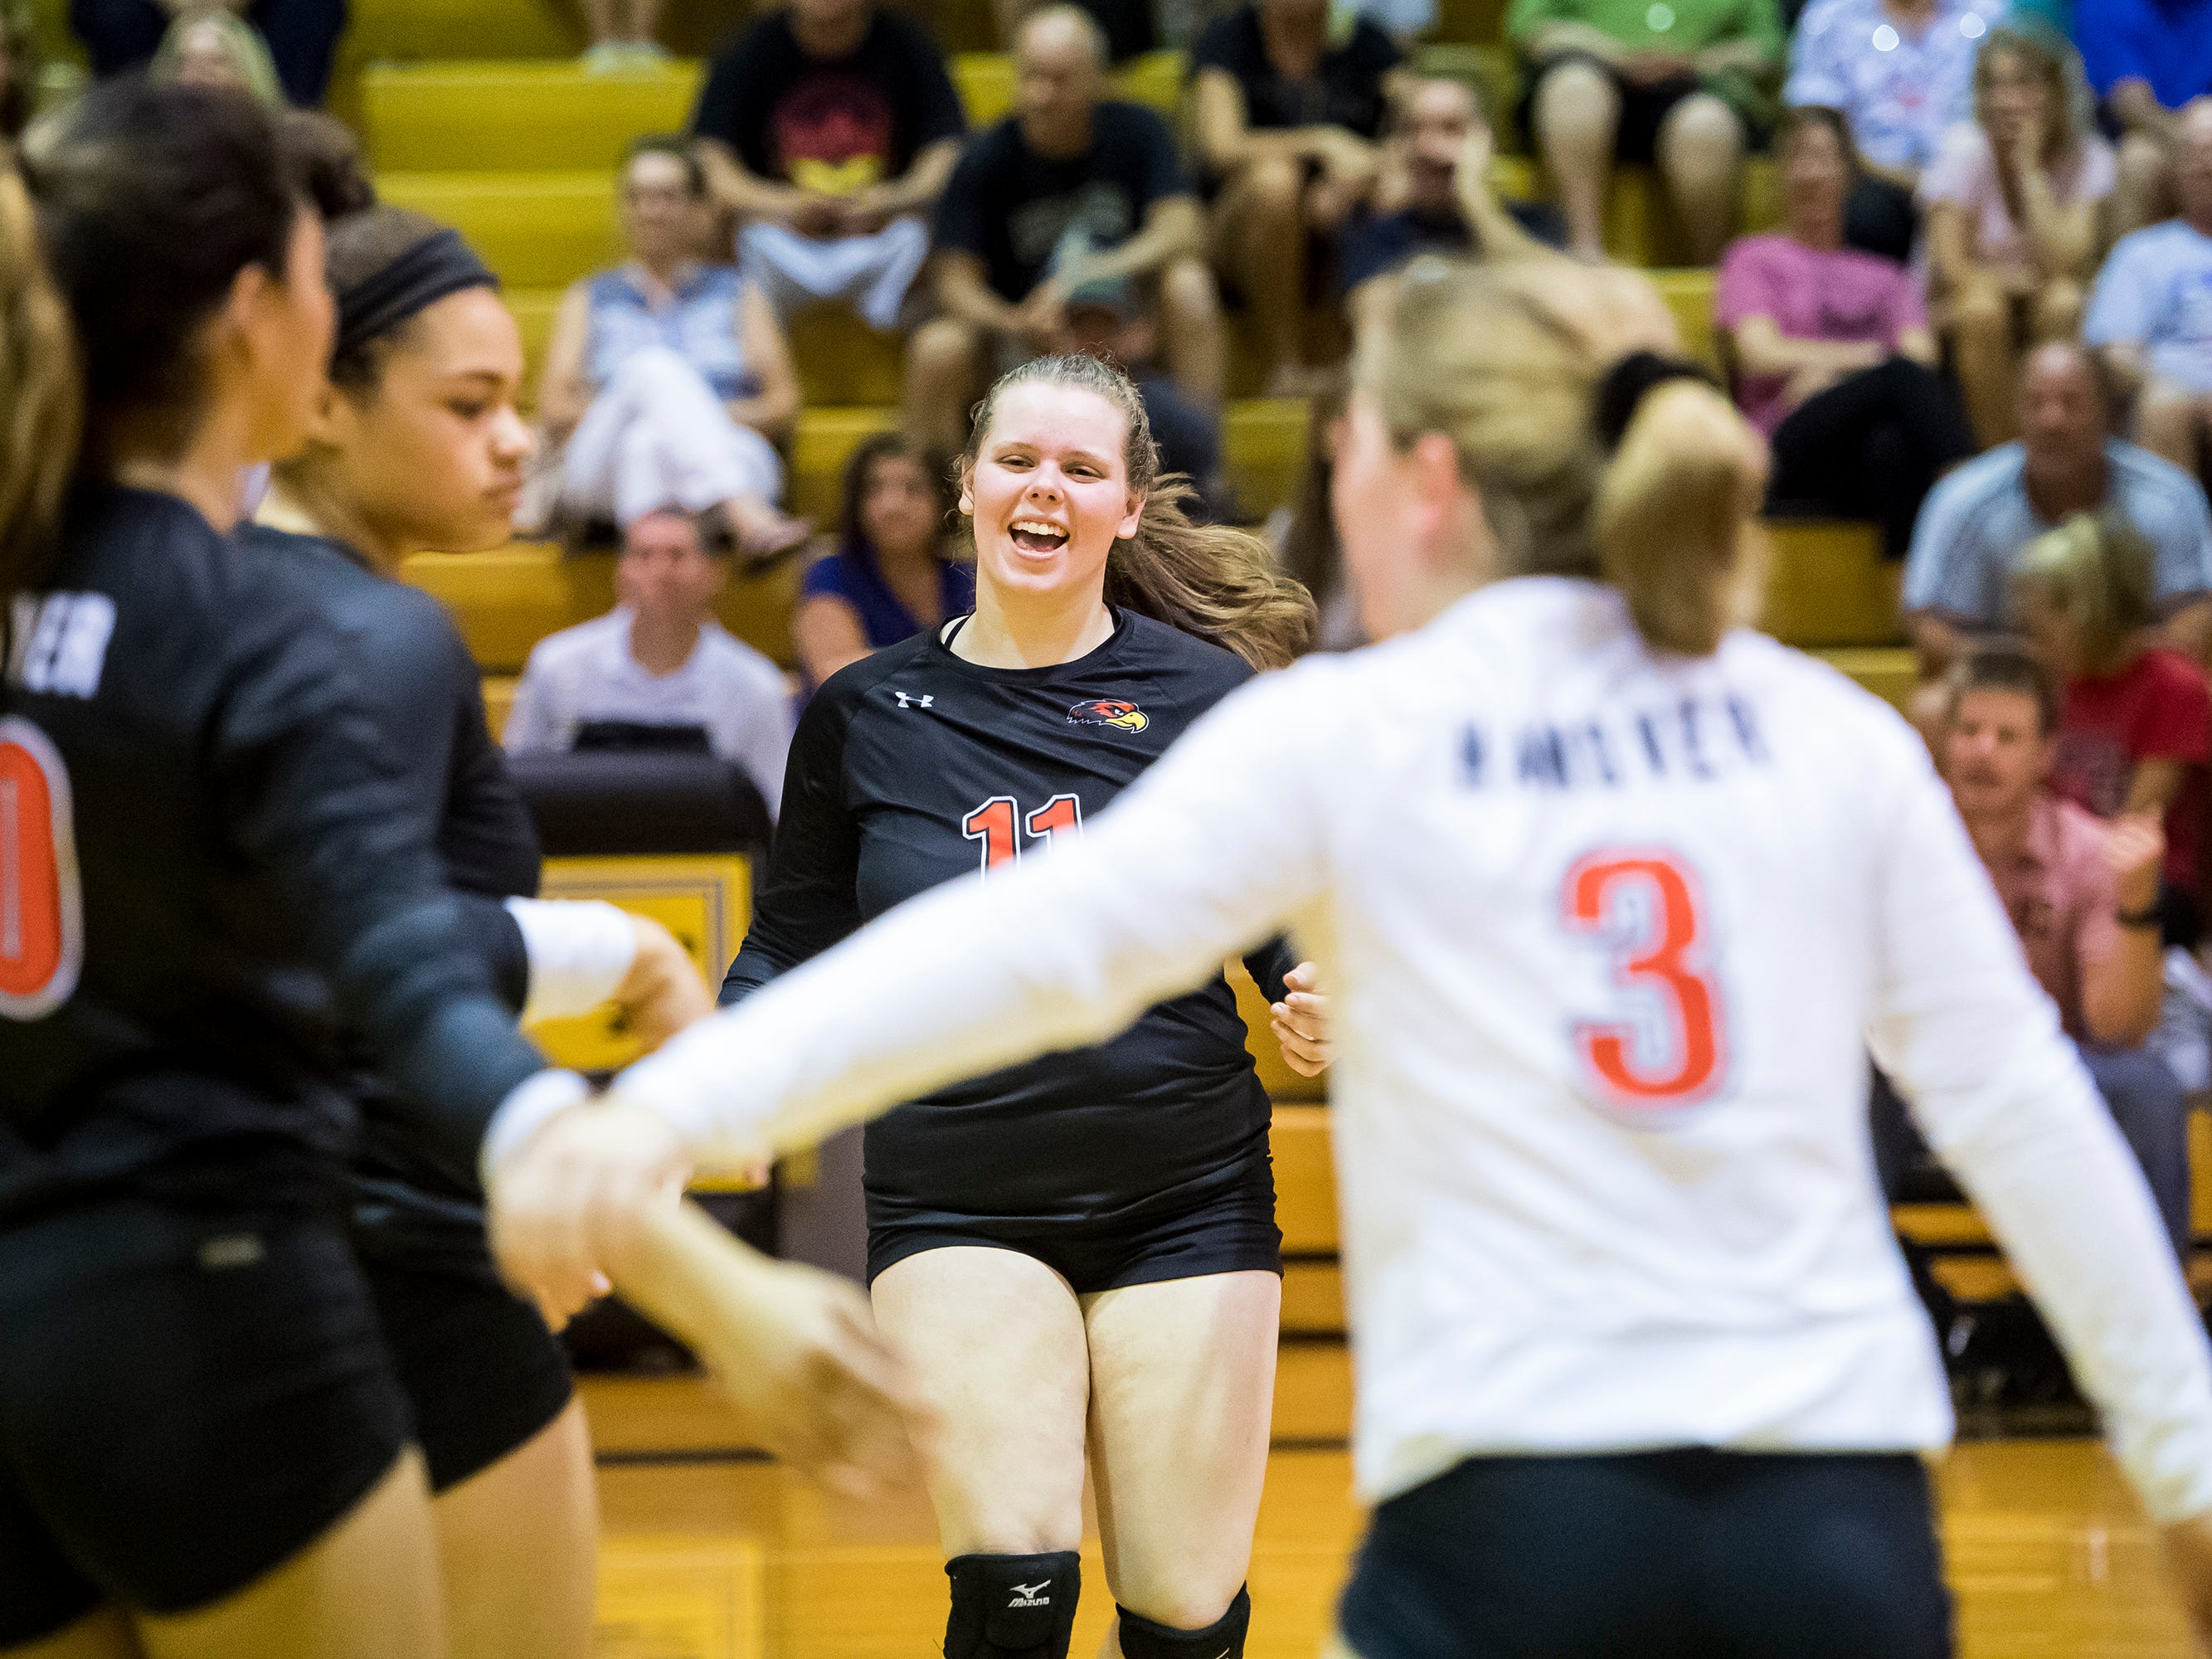 Hanover's Savannah Disney (11) celebrates a point with her teammates during play against Delone Catholic on Tuesday, September 18, 2018. The Hawkettes fell in three straight sets;  25-16, 25-19, 25-14.